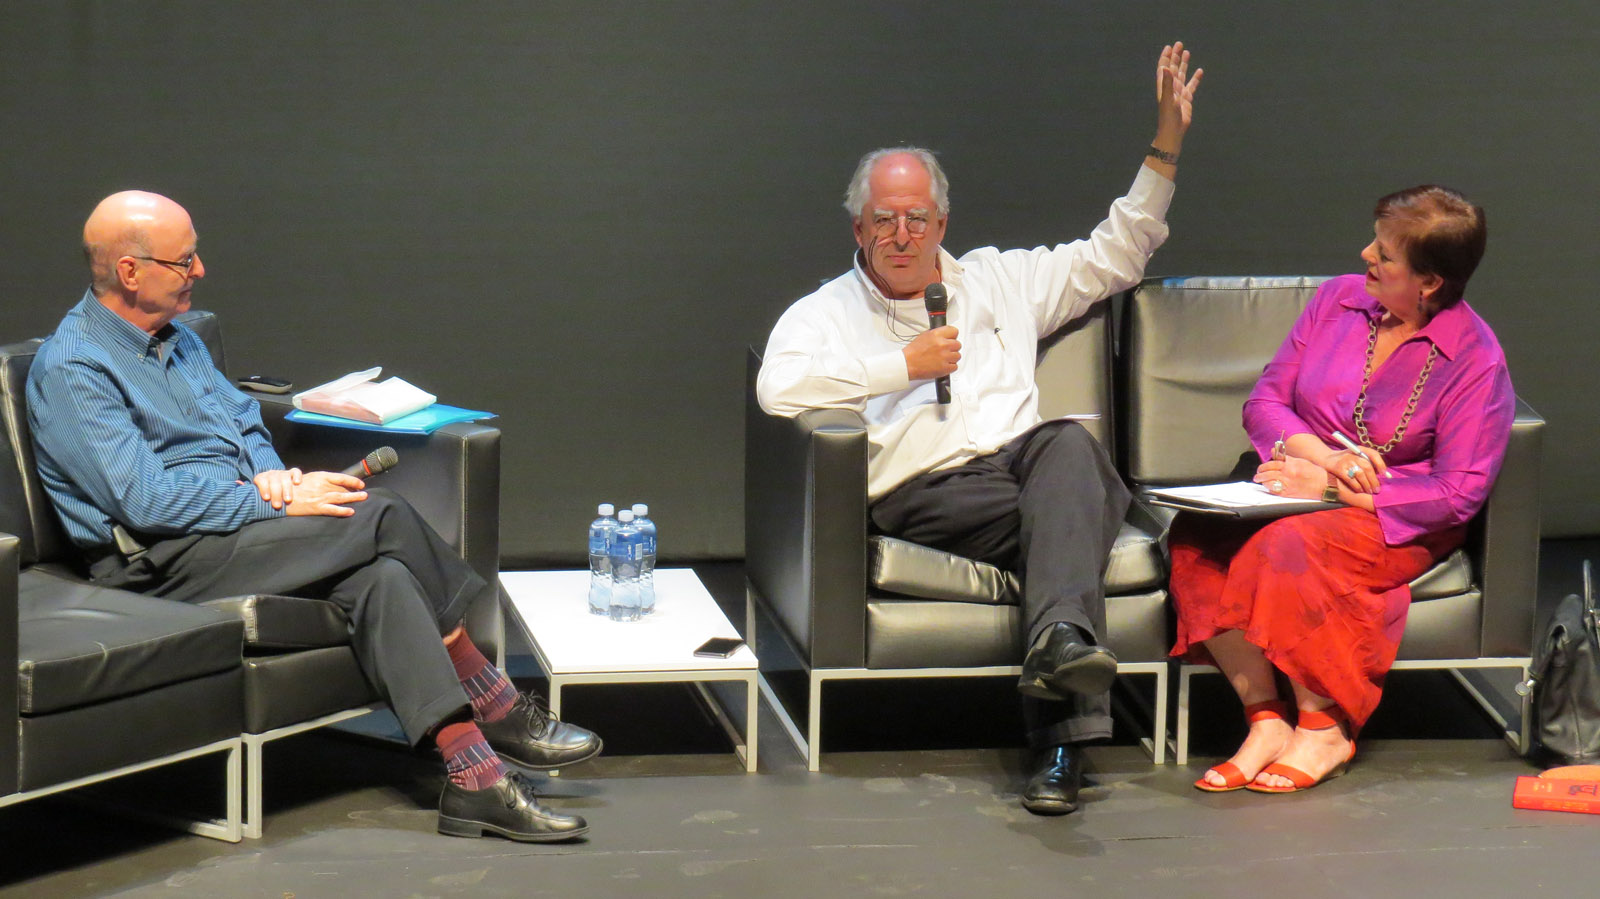 Click the image for a view of: Jack Ginsberg and William Kentridge in Conversation. Sunday 26 March